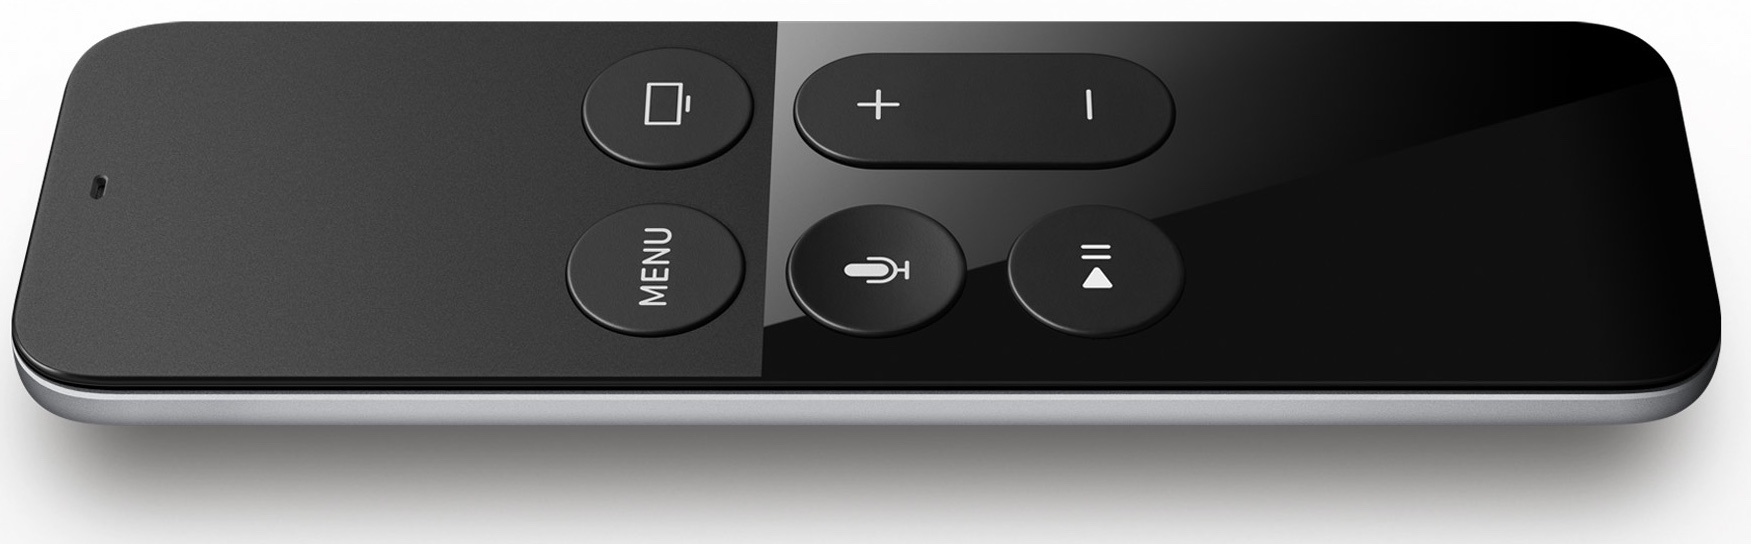 Apple TV 4 remote image 001